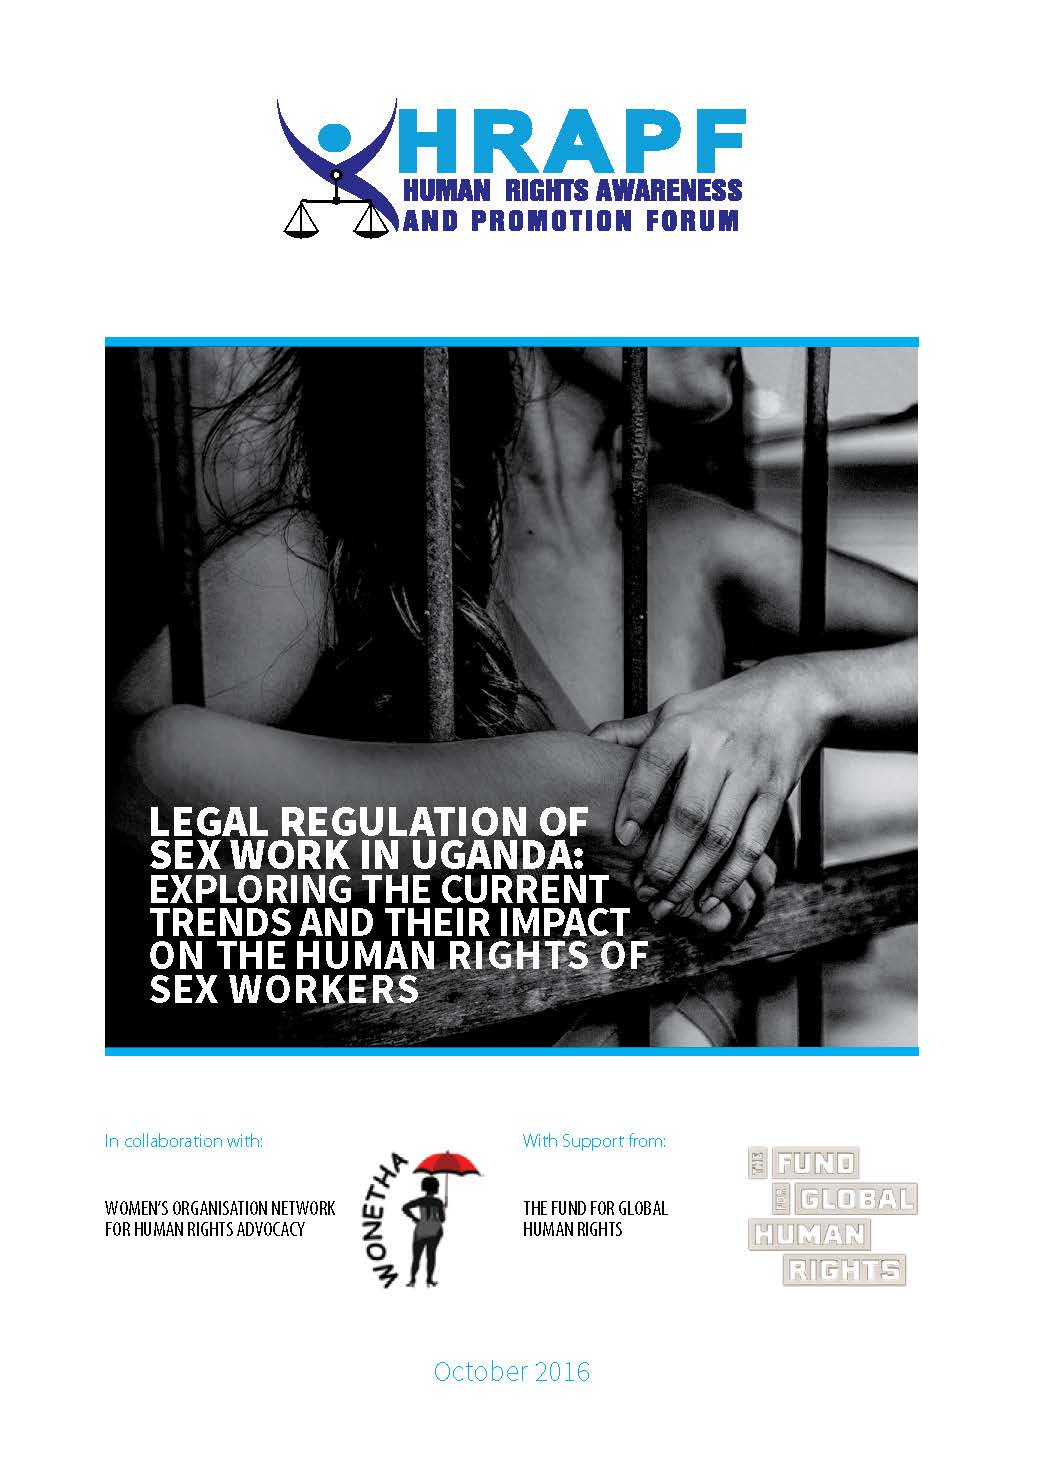 Legal regulation of sex workers in uganda study updated